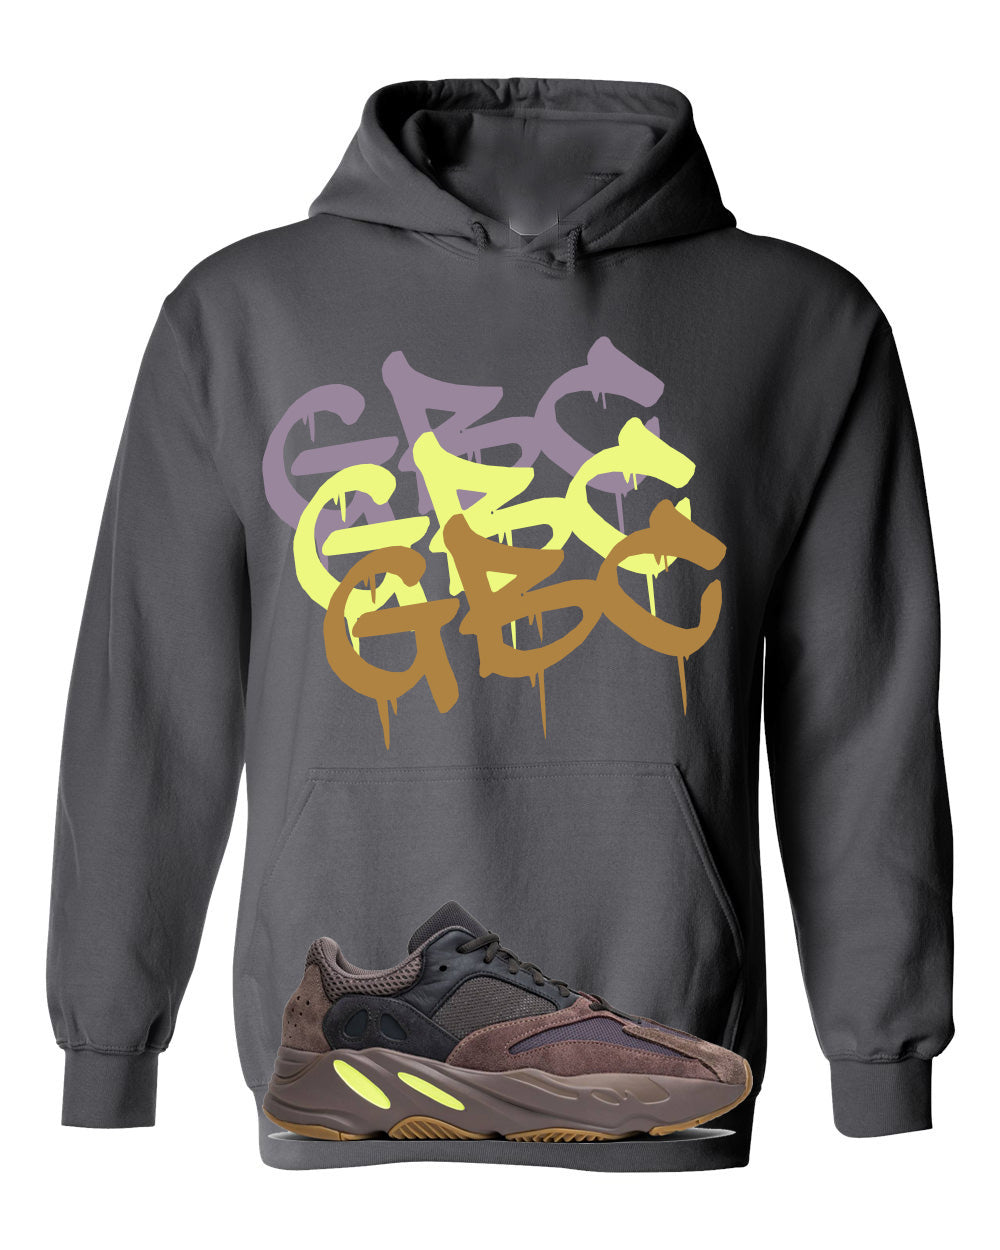 Guy Benson Collection gbc drip mauve color-way Hoodie